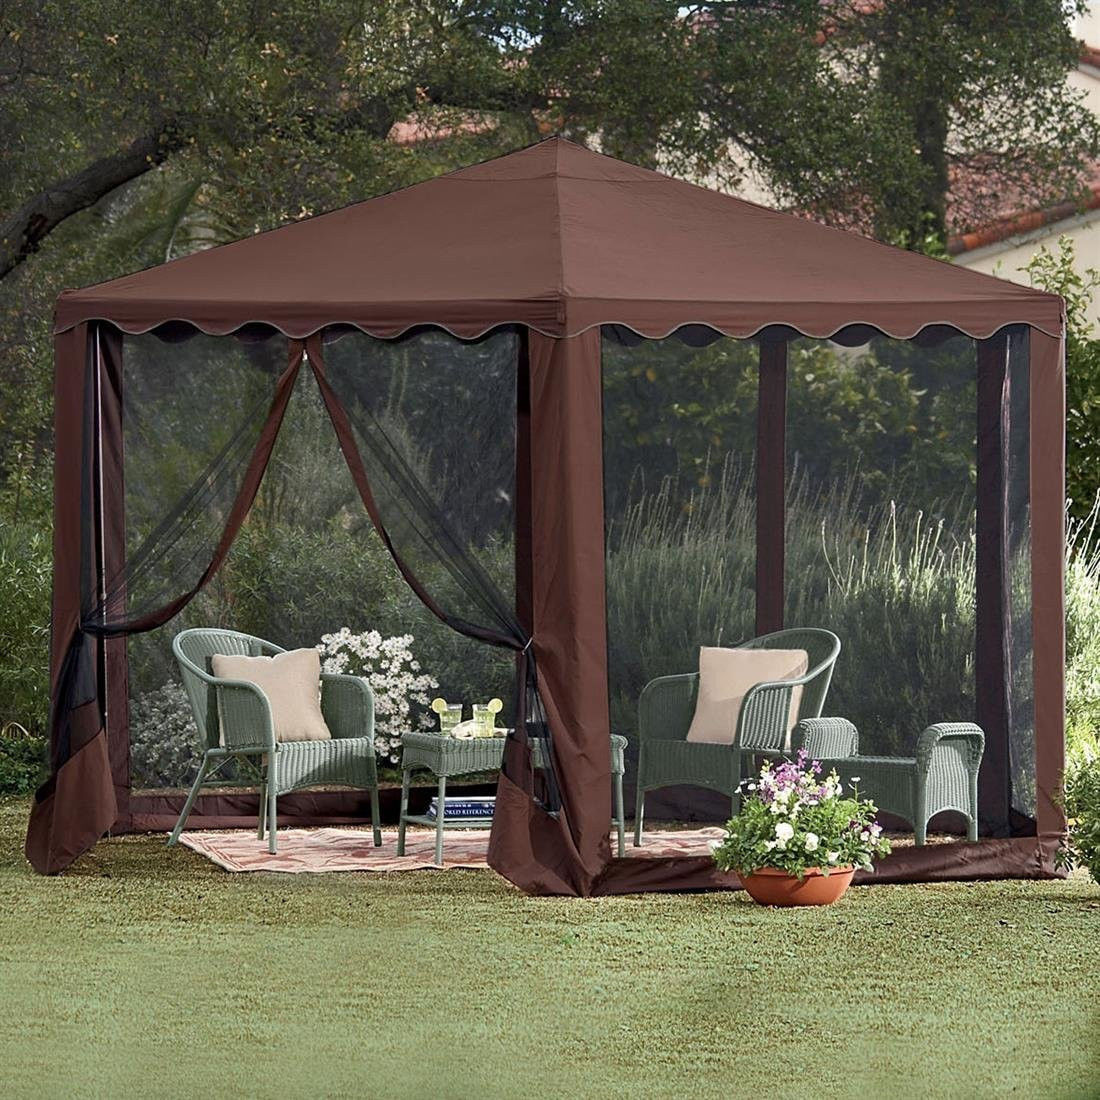 Outdoor canopy gazebo party tent & Outdoor canopy gazebo party tent | Deck design and Ideas